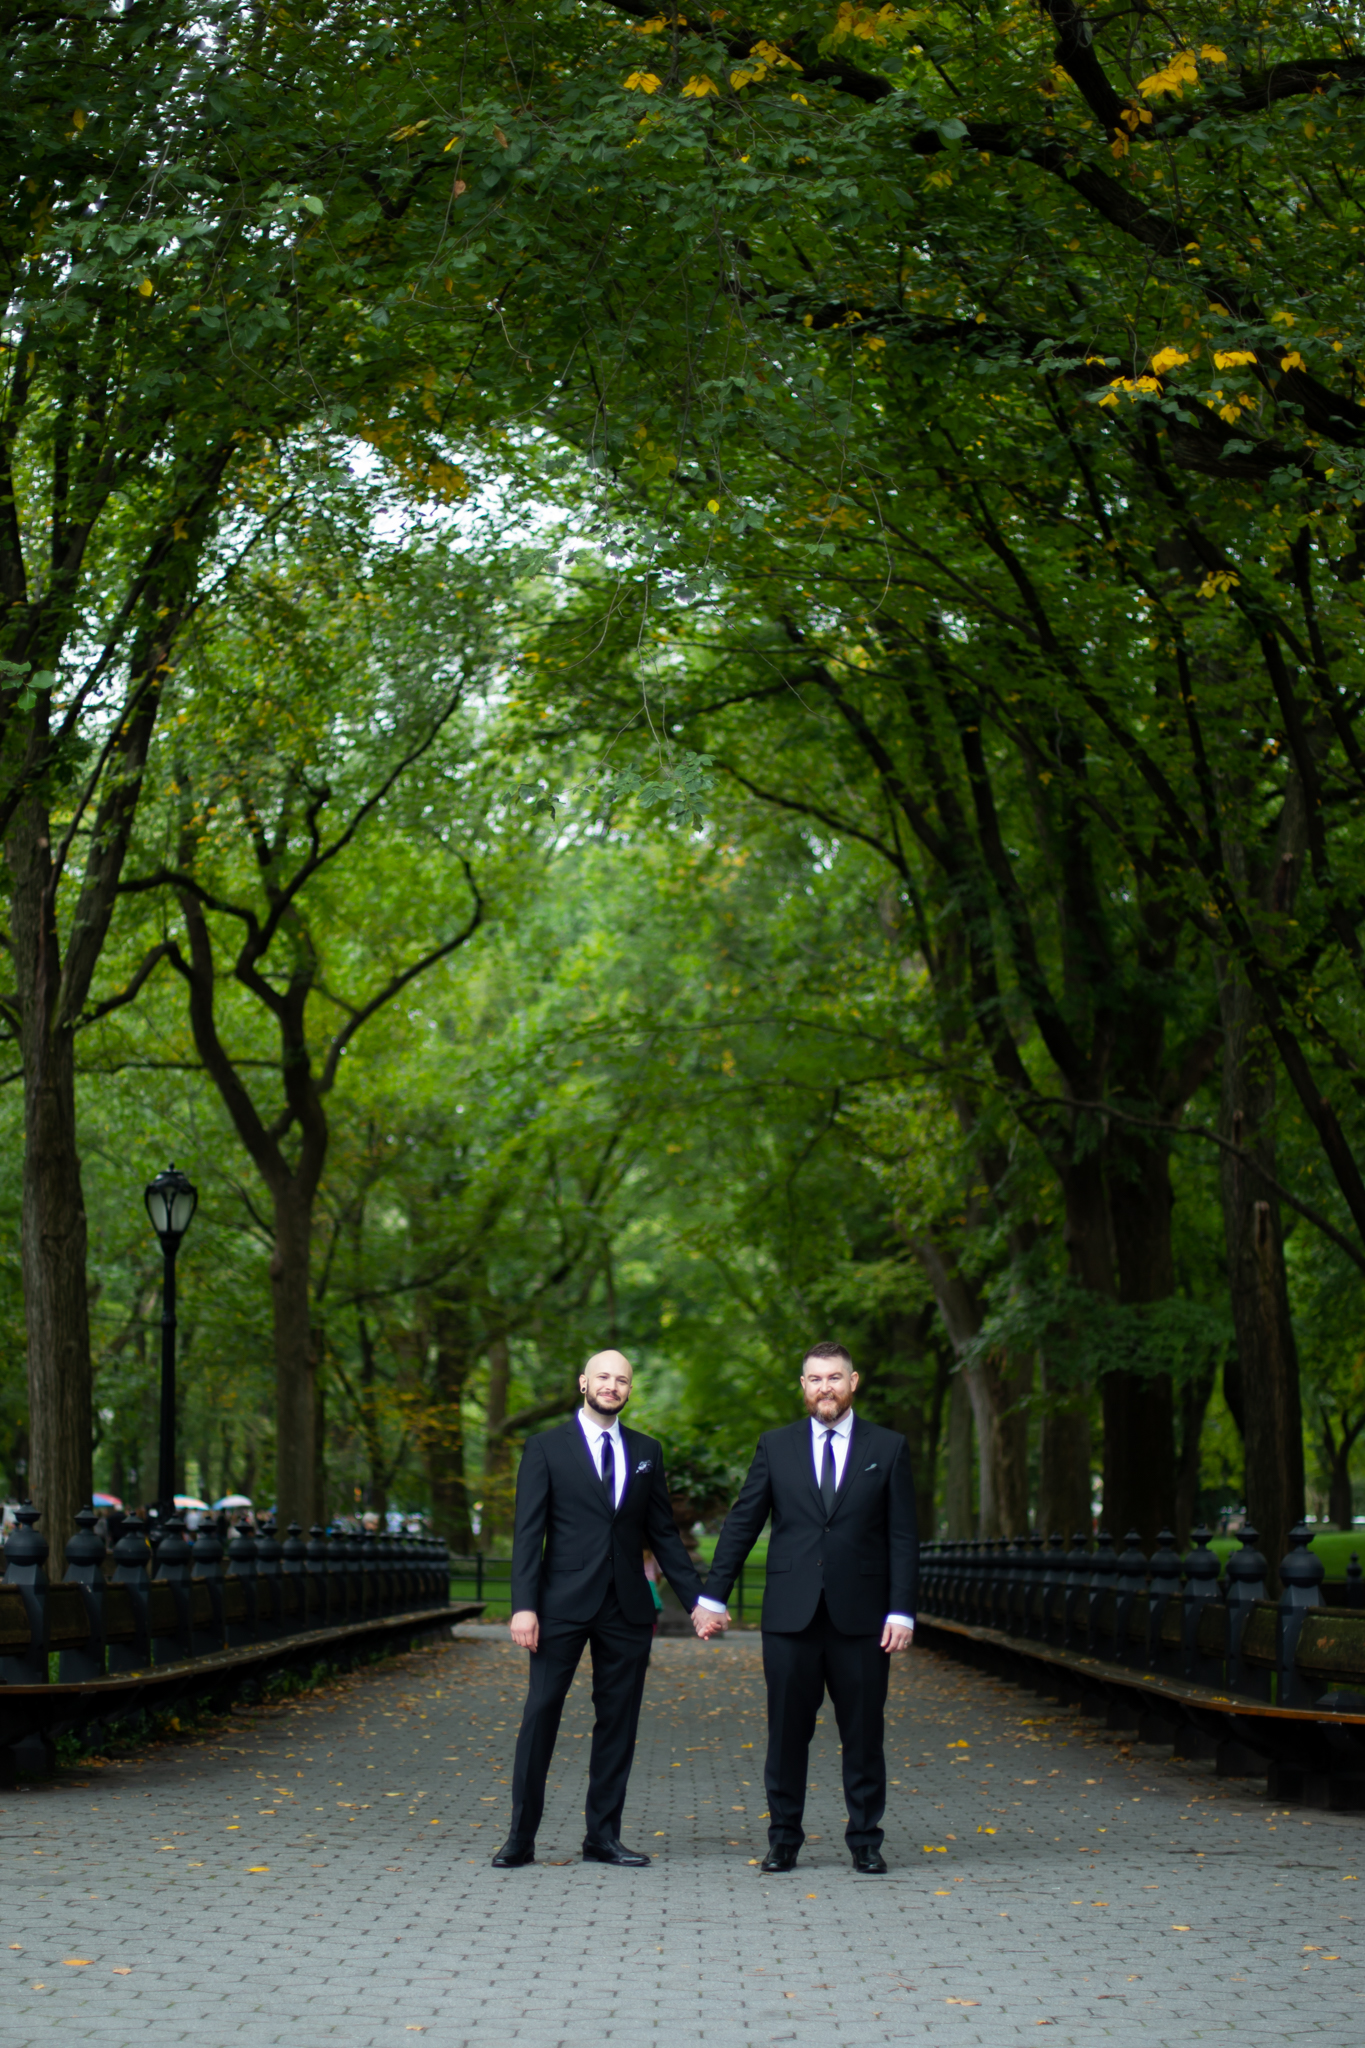 Kate-Alison-Photography-Central-Park-Elopement-Robert-Michael-100618-147.jpg